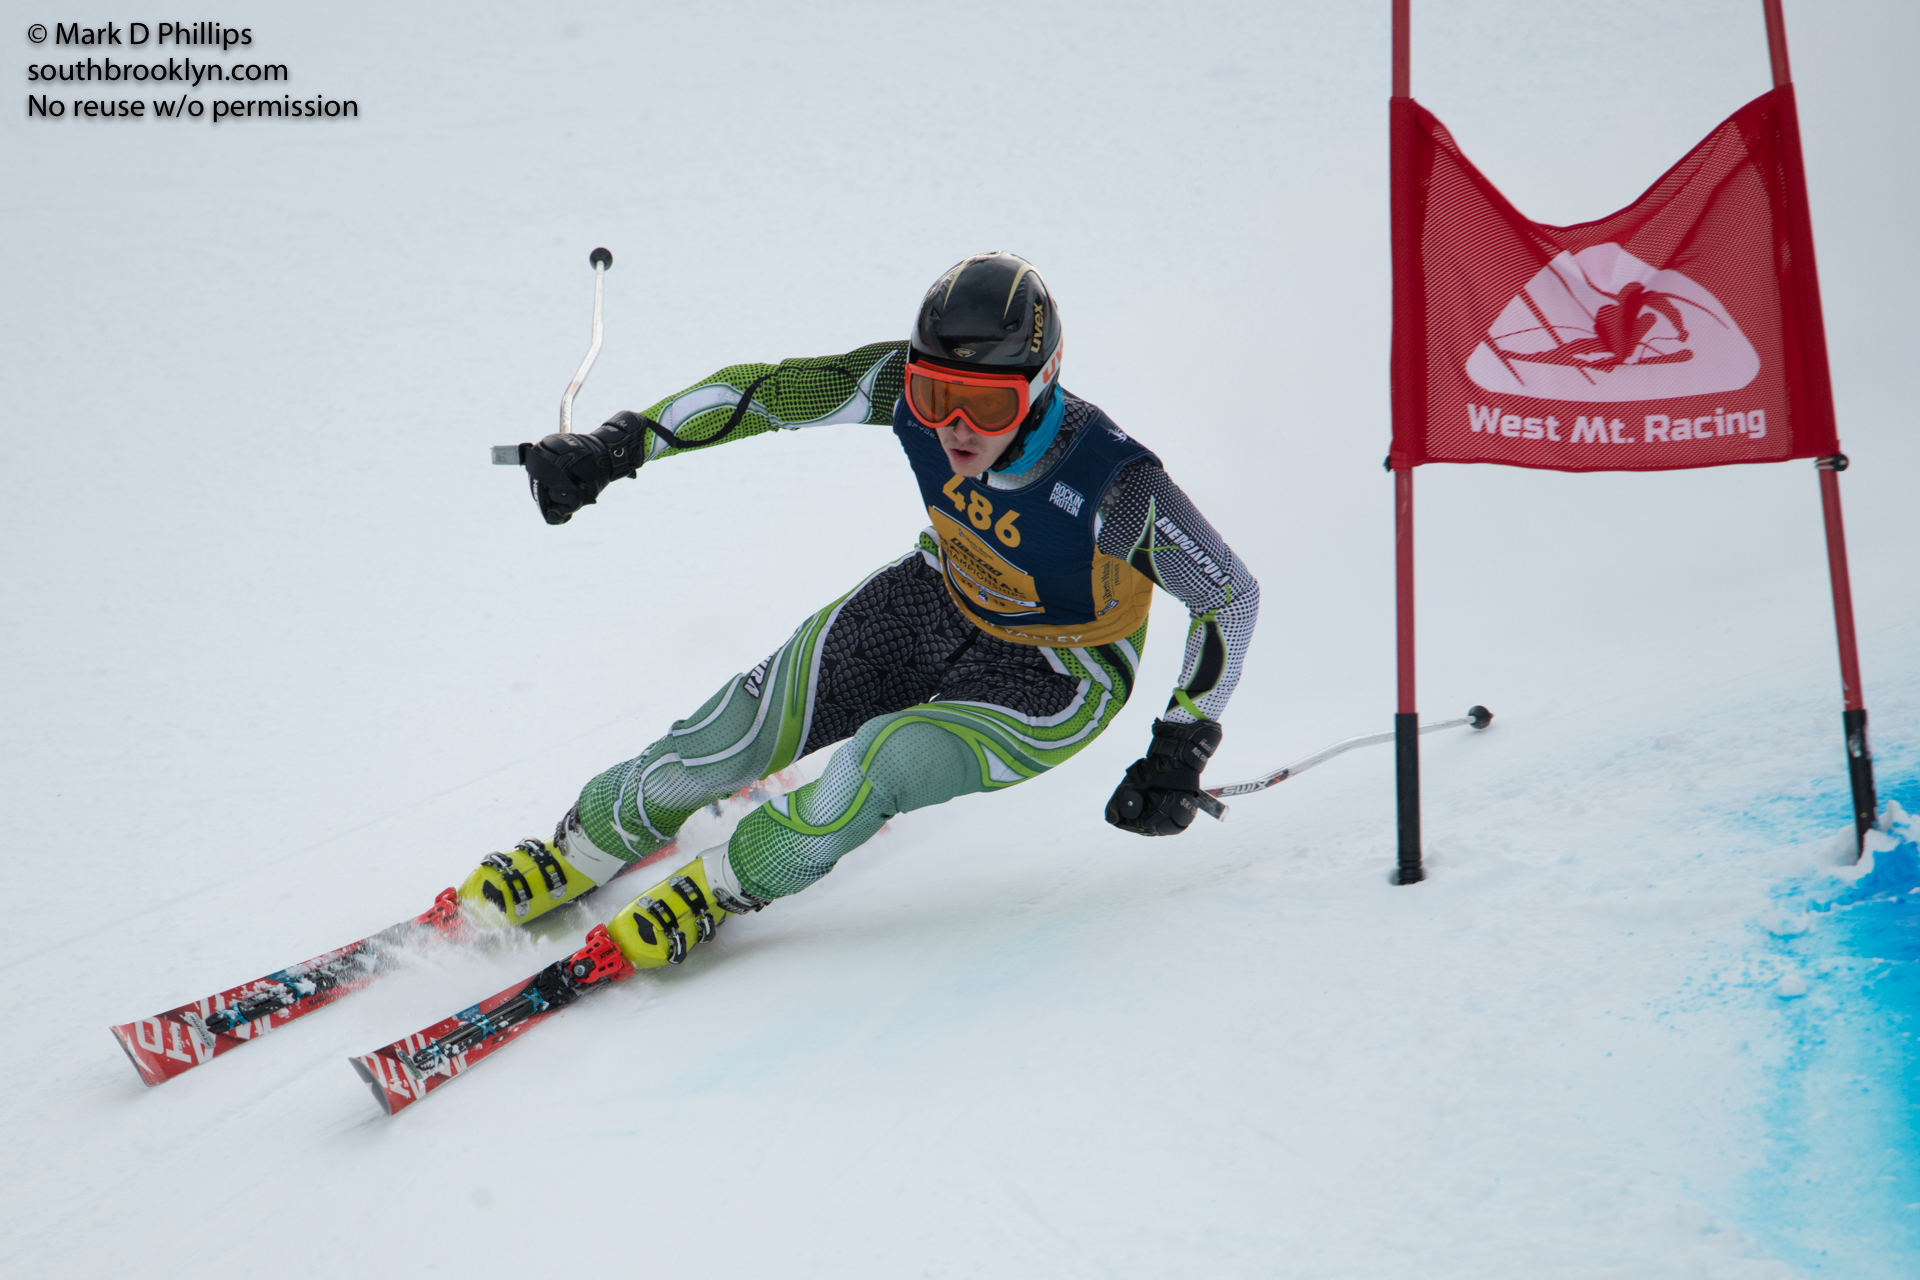 USSA Masters GS race at West Mountain Ski Area in Queensbury, NY